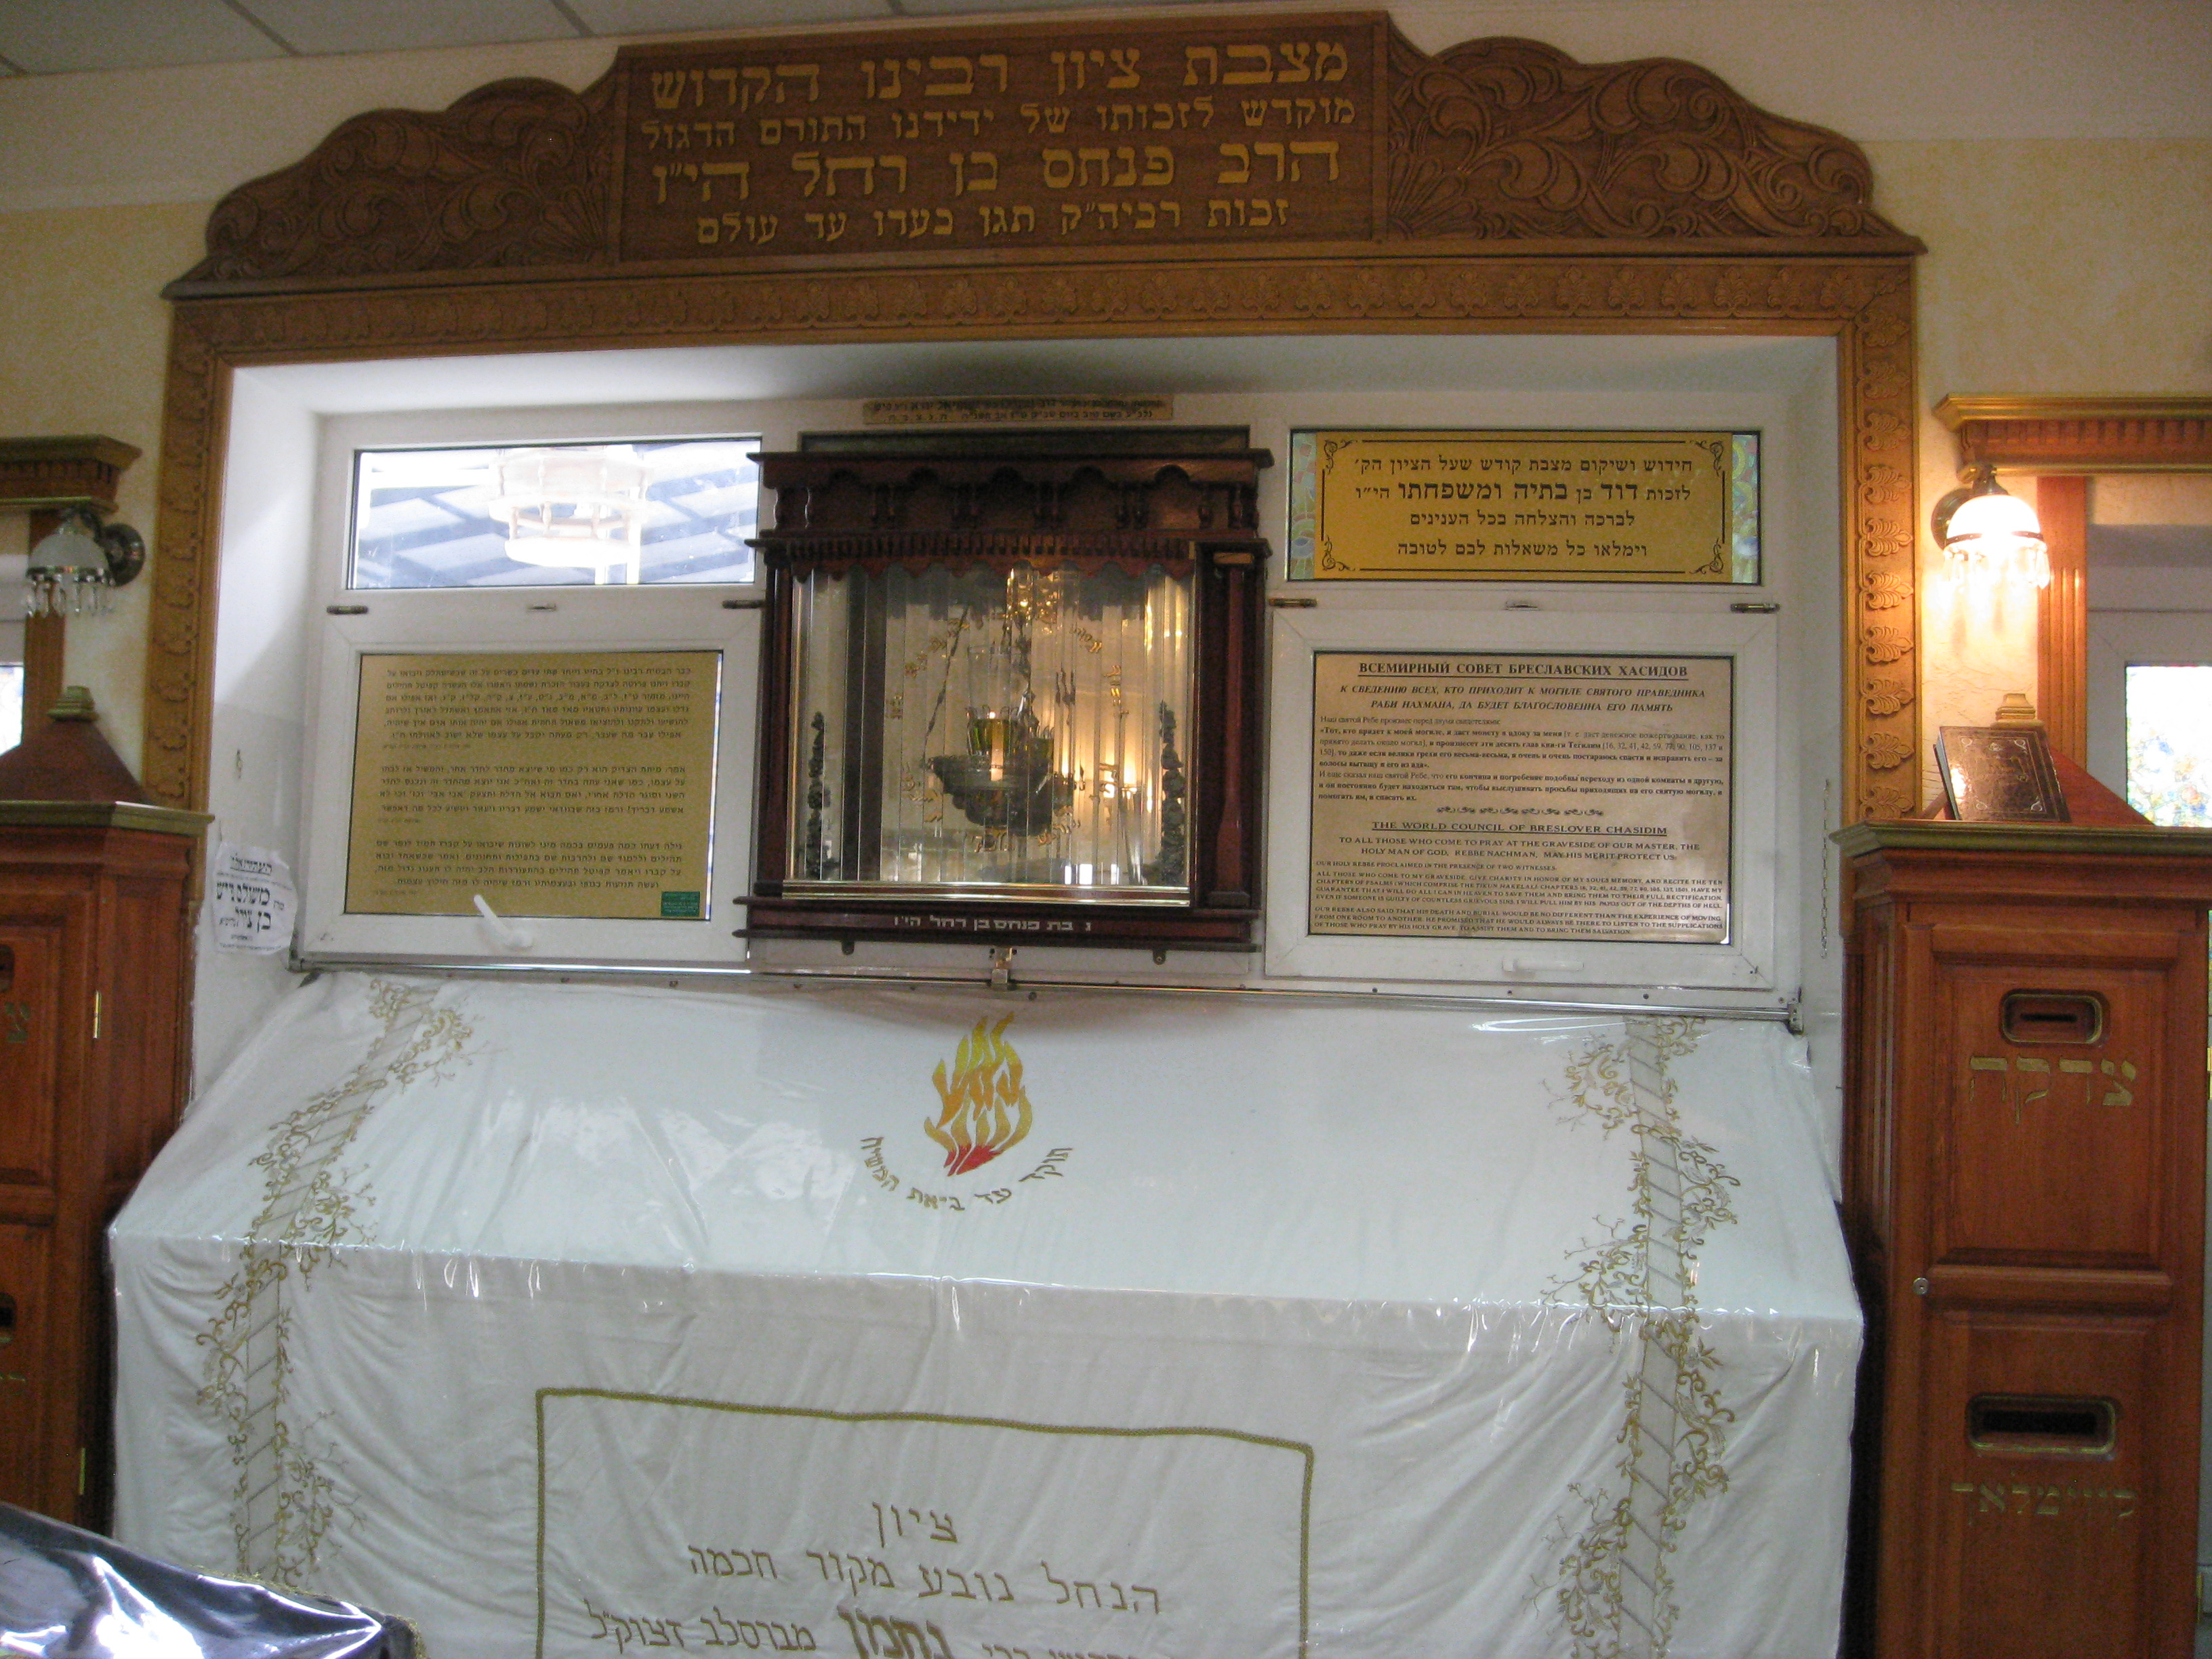 Rabbi_Nahman_Tomb_(Uman,_Ukraine).JPG (3264×2448)